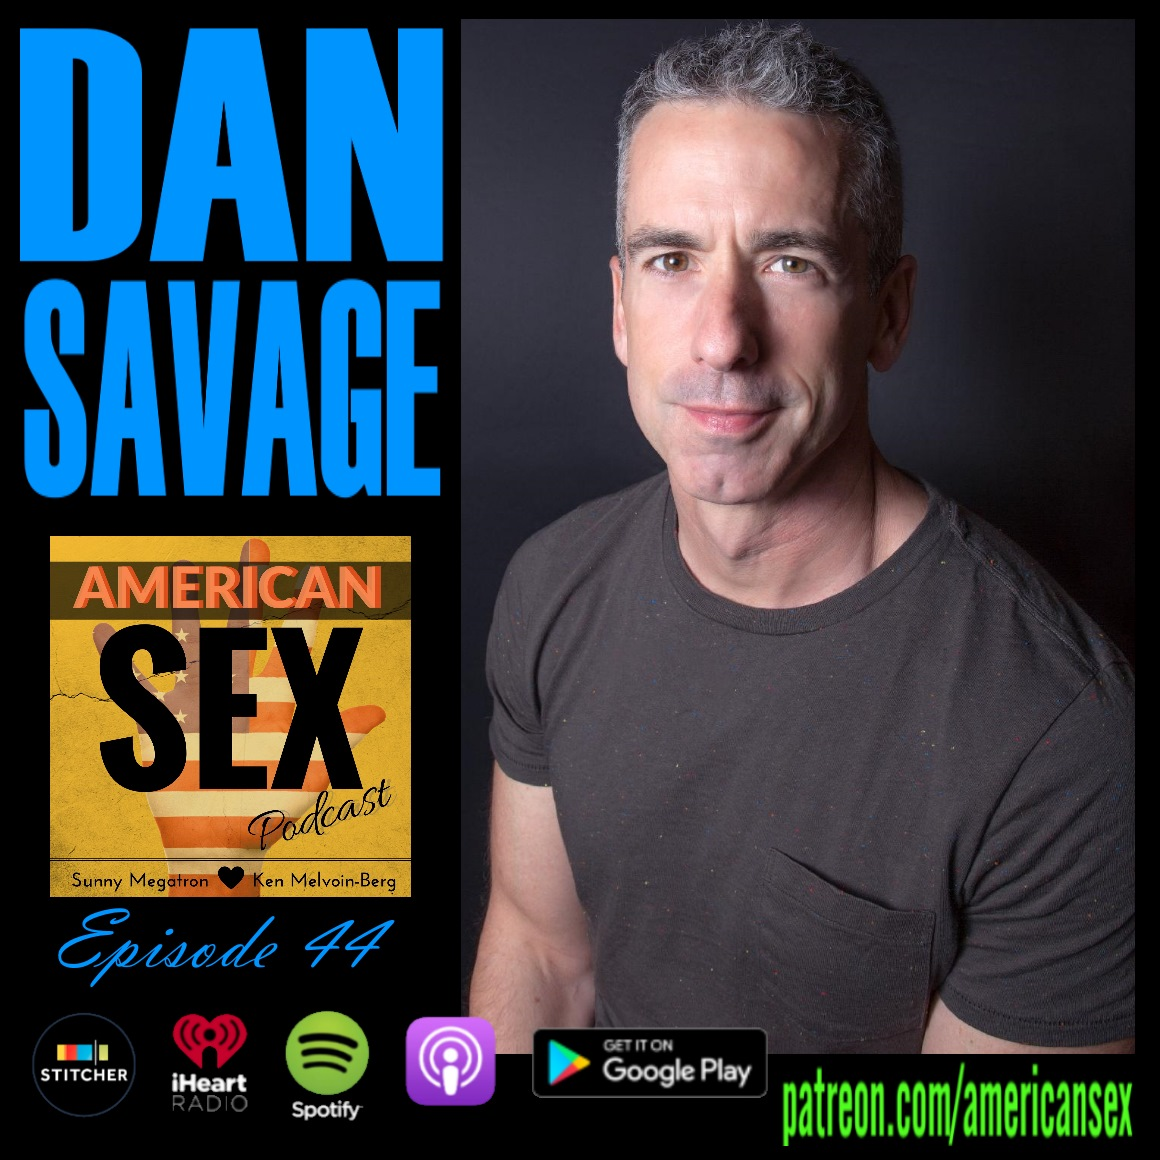 Dan Savage Savage Lovecast